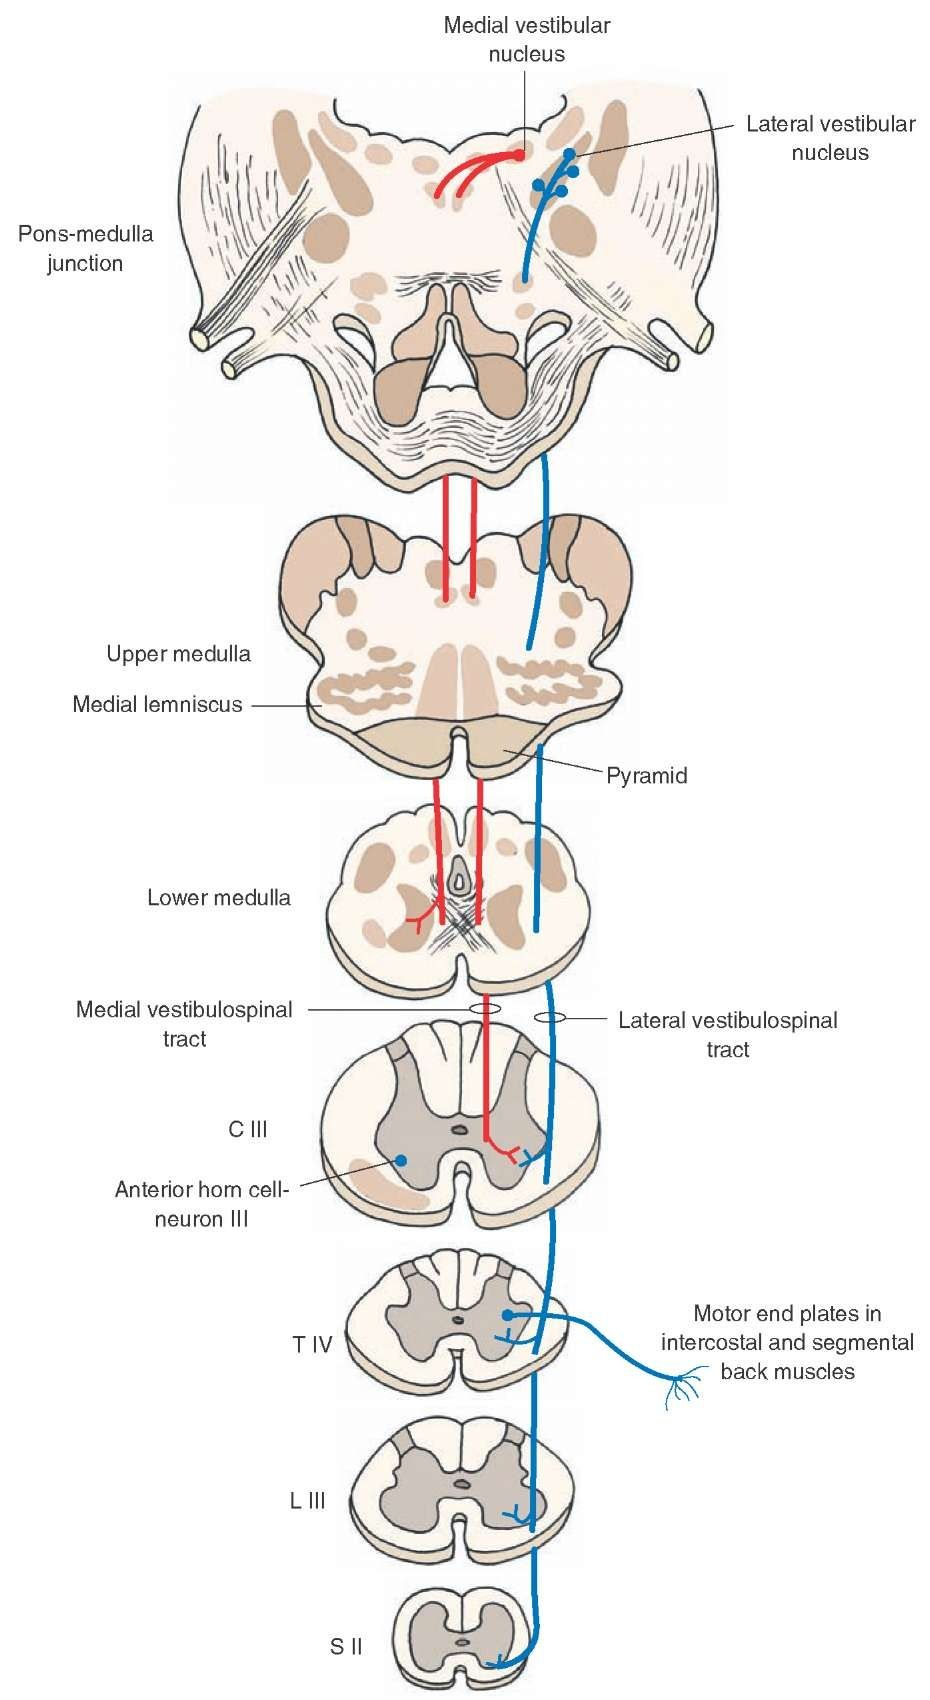 small resolution of vestibulospinal tracts nervous system parts nervous system anatomy central nervous system brain anatomy